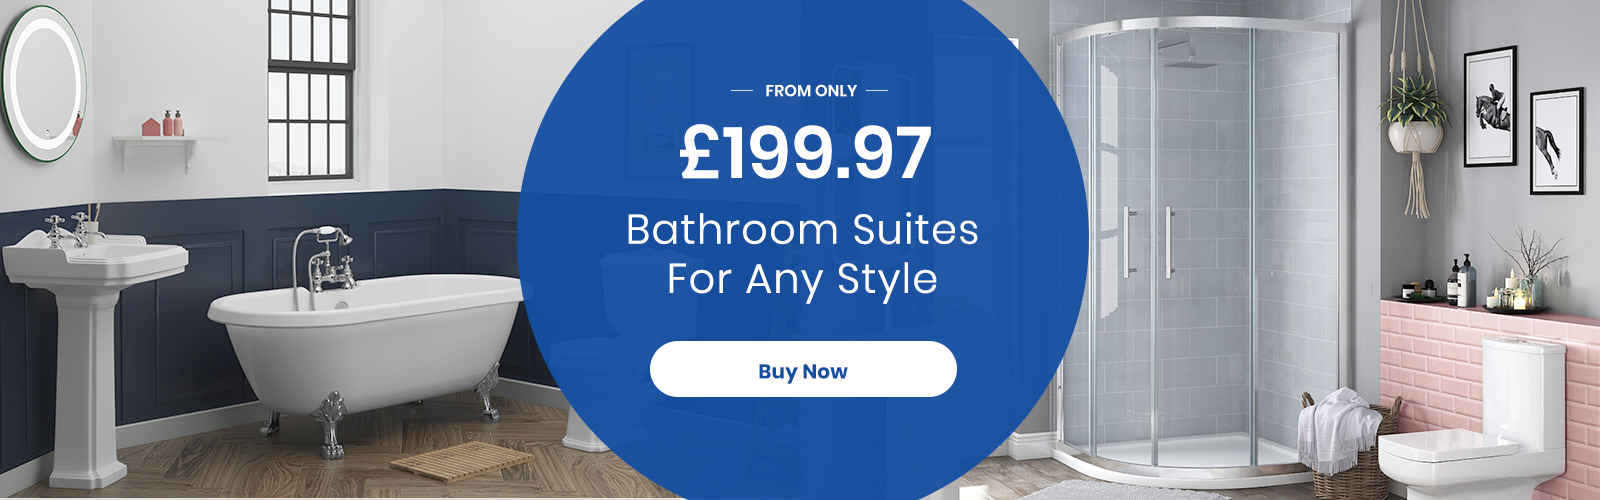 Bathroom Takeaway Discount & Voucher Code